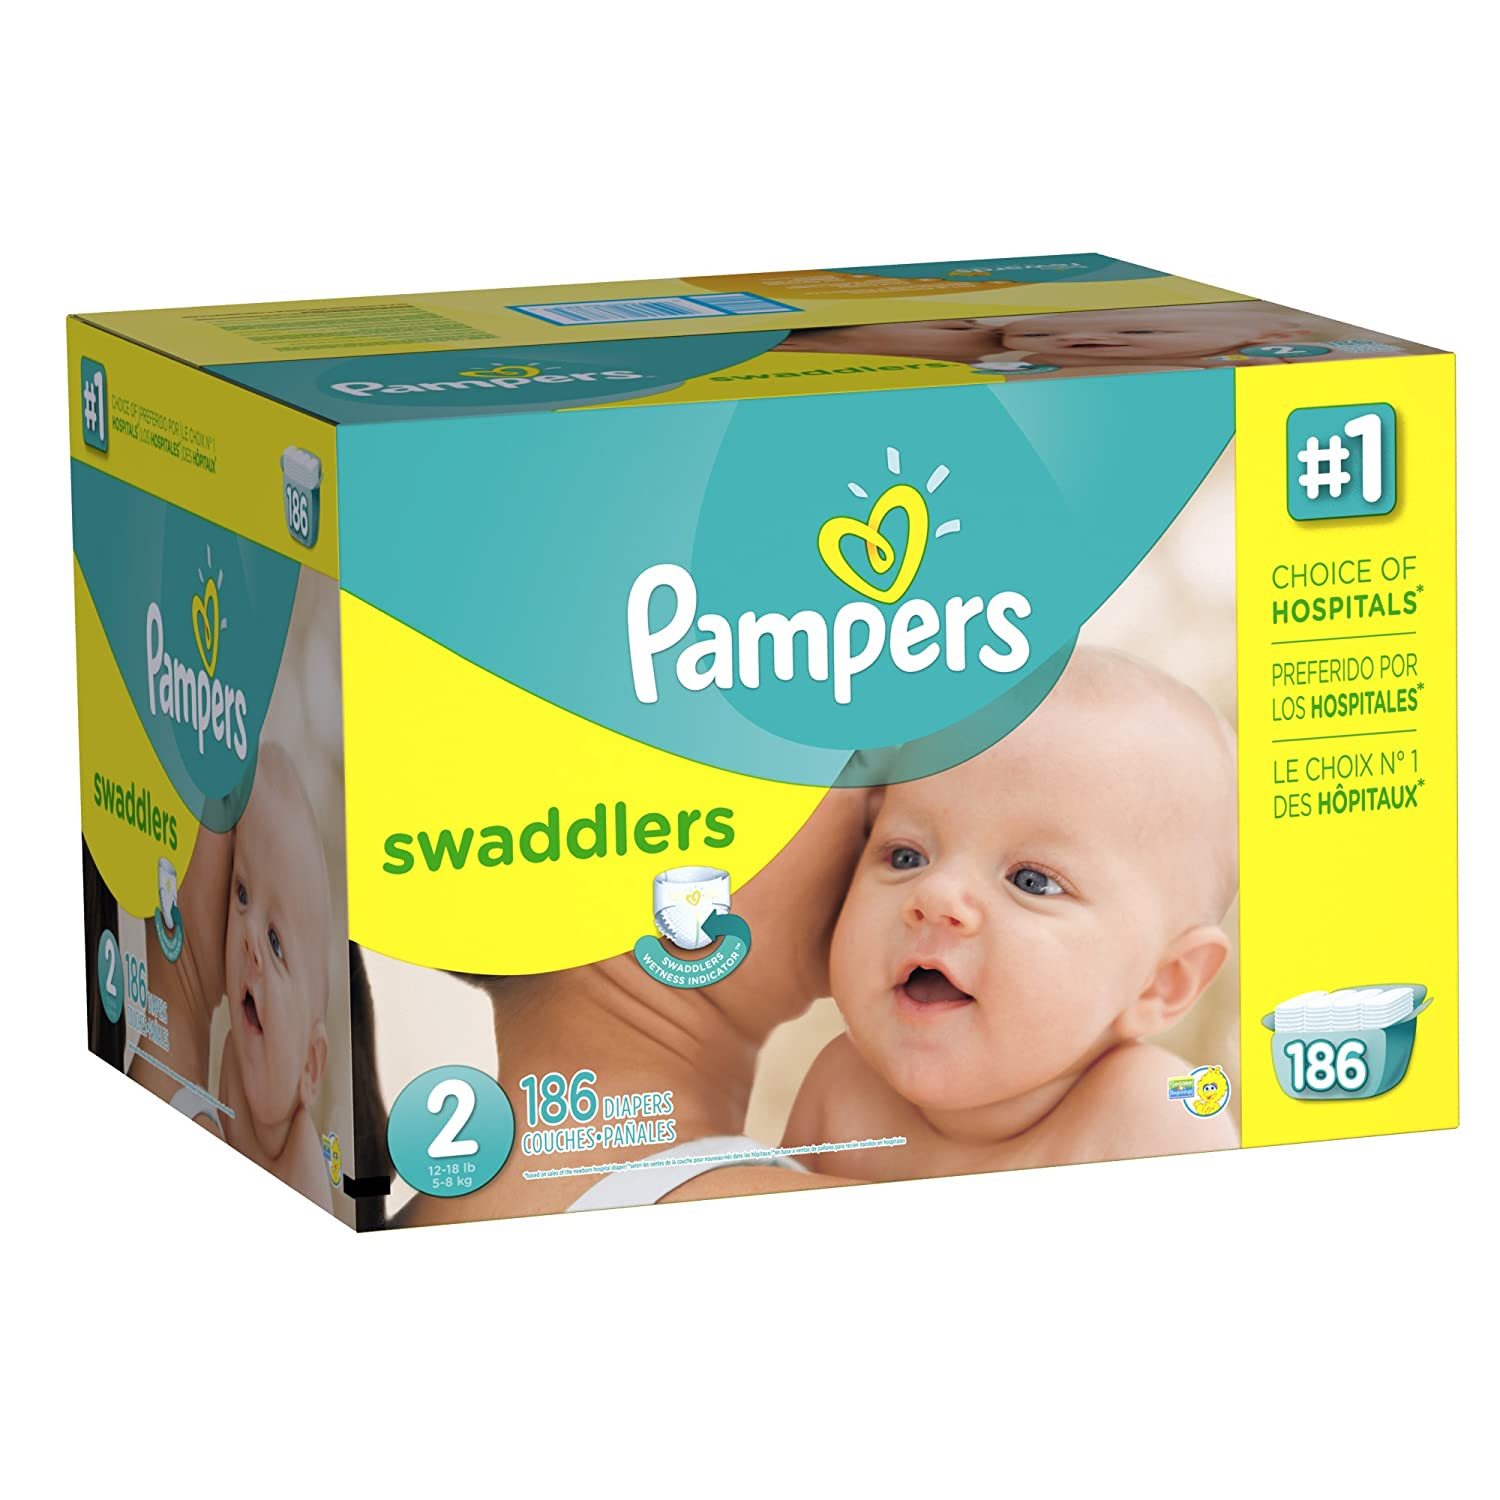 pampers diapers, like almost any article of clothing, will burn if exposed to flame. to avoid risk of choking on plastic, padding, or other materials, do not allow your child to tear the diaper, or handle any loose pieces of the diaper. discard any torn or unsealed diaper, or any loose pieces of the diaper. Reviews: